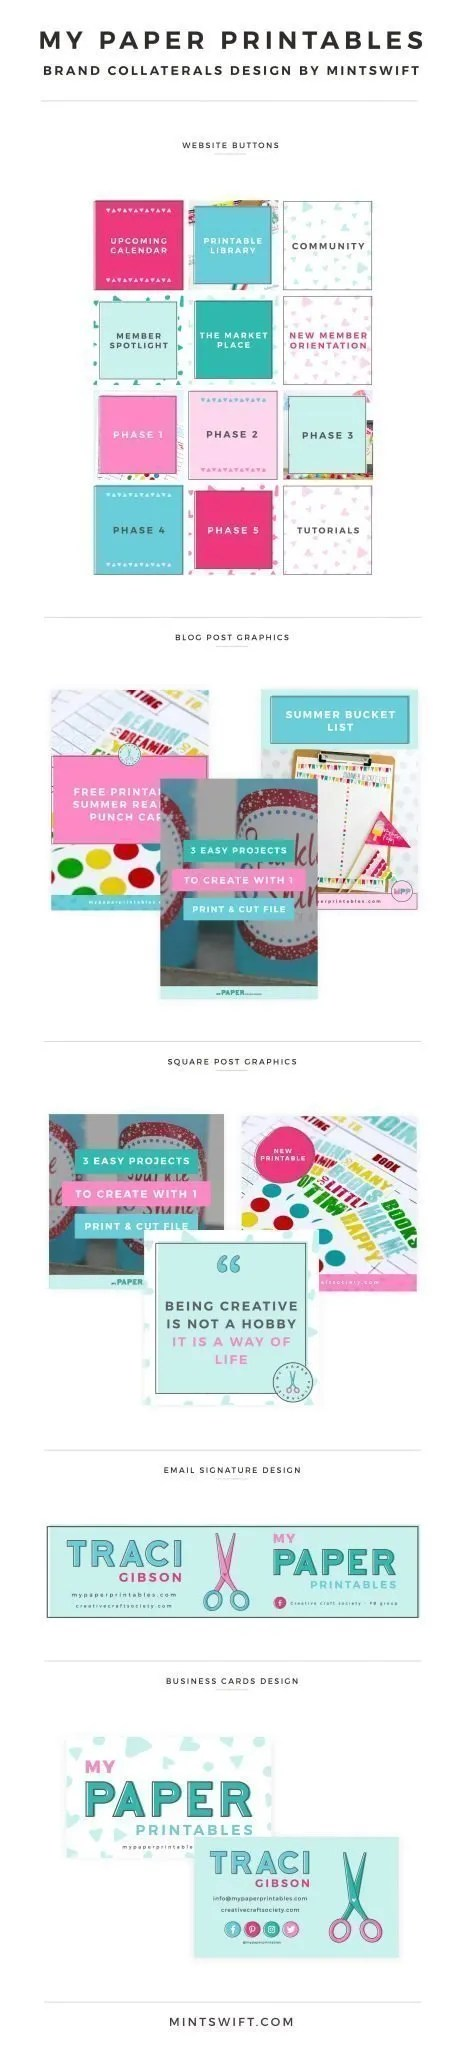 My Paper Printables - Brand Collaterals Design by MintSwift